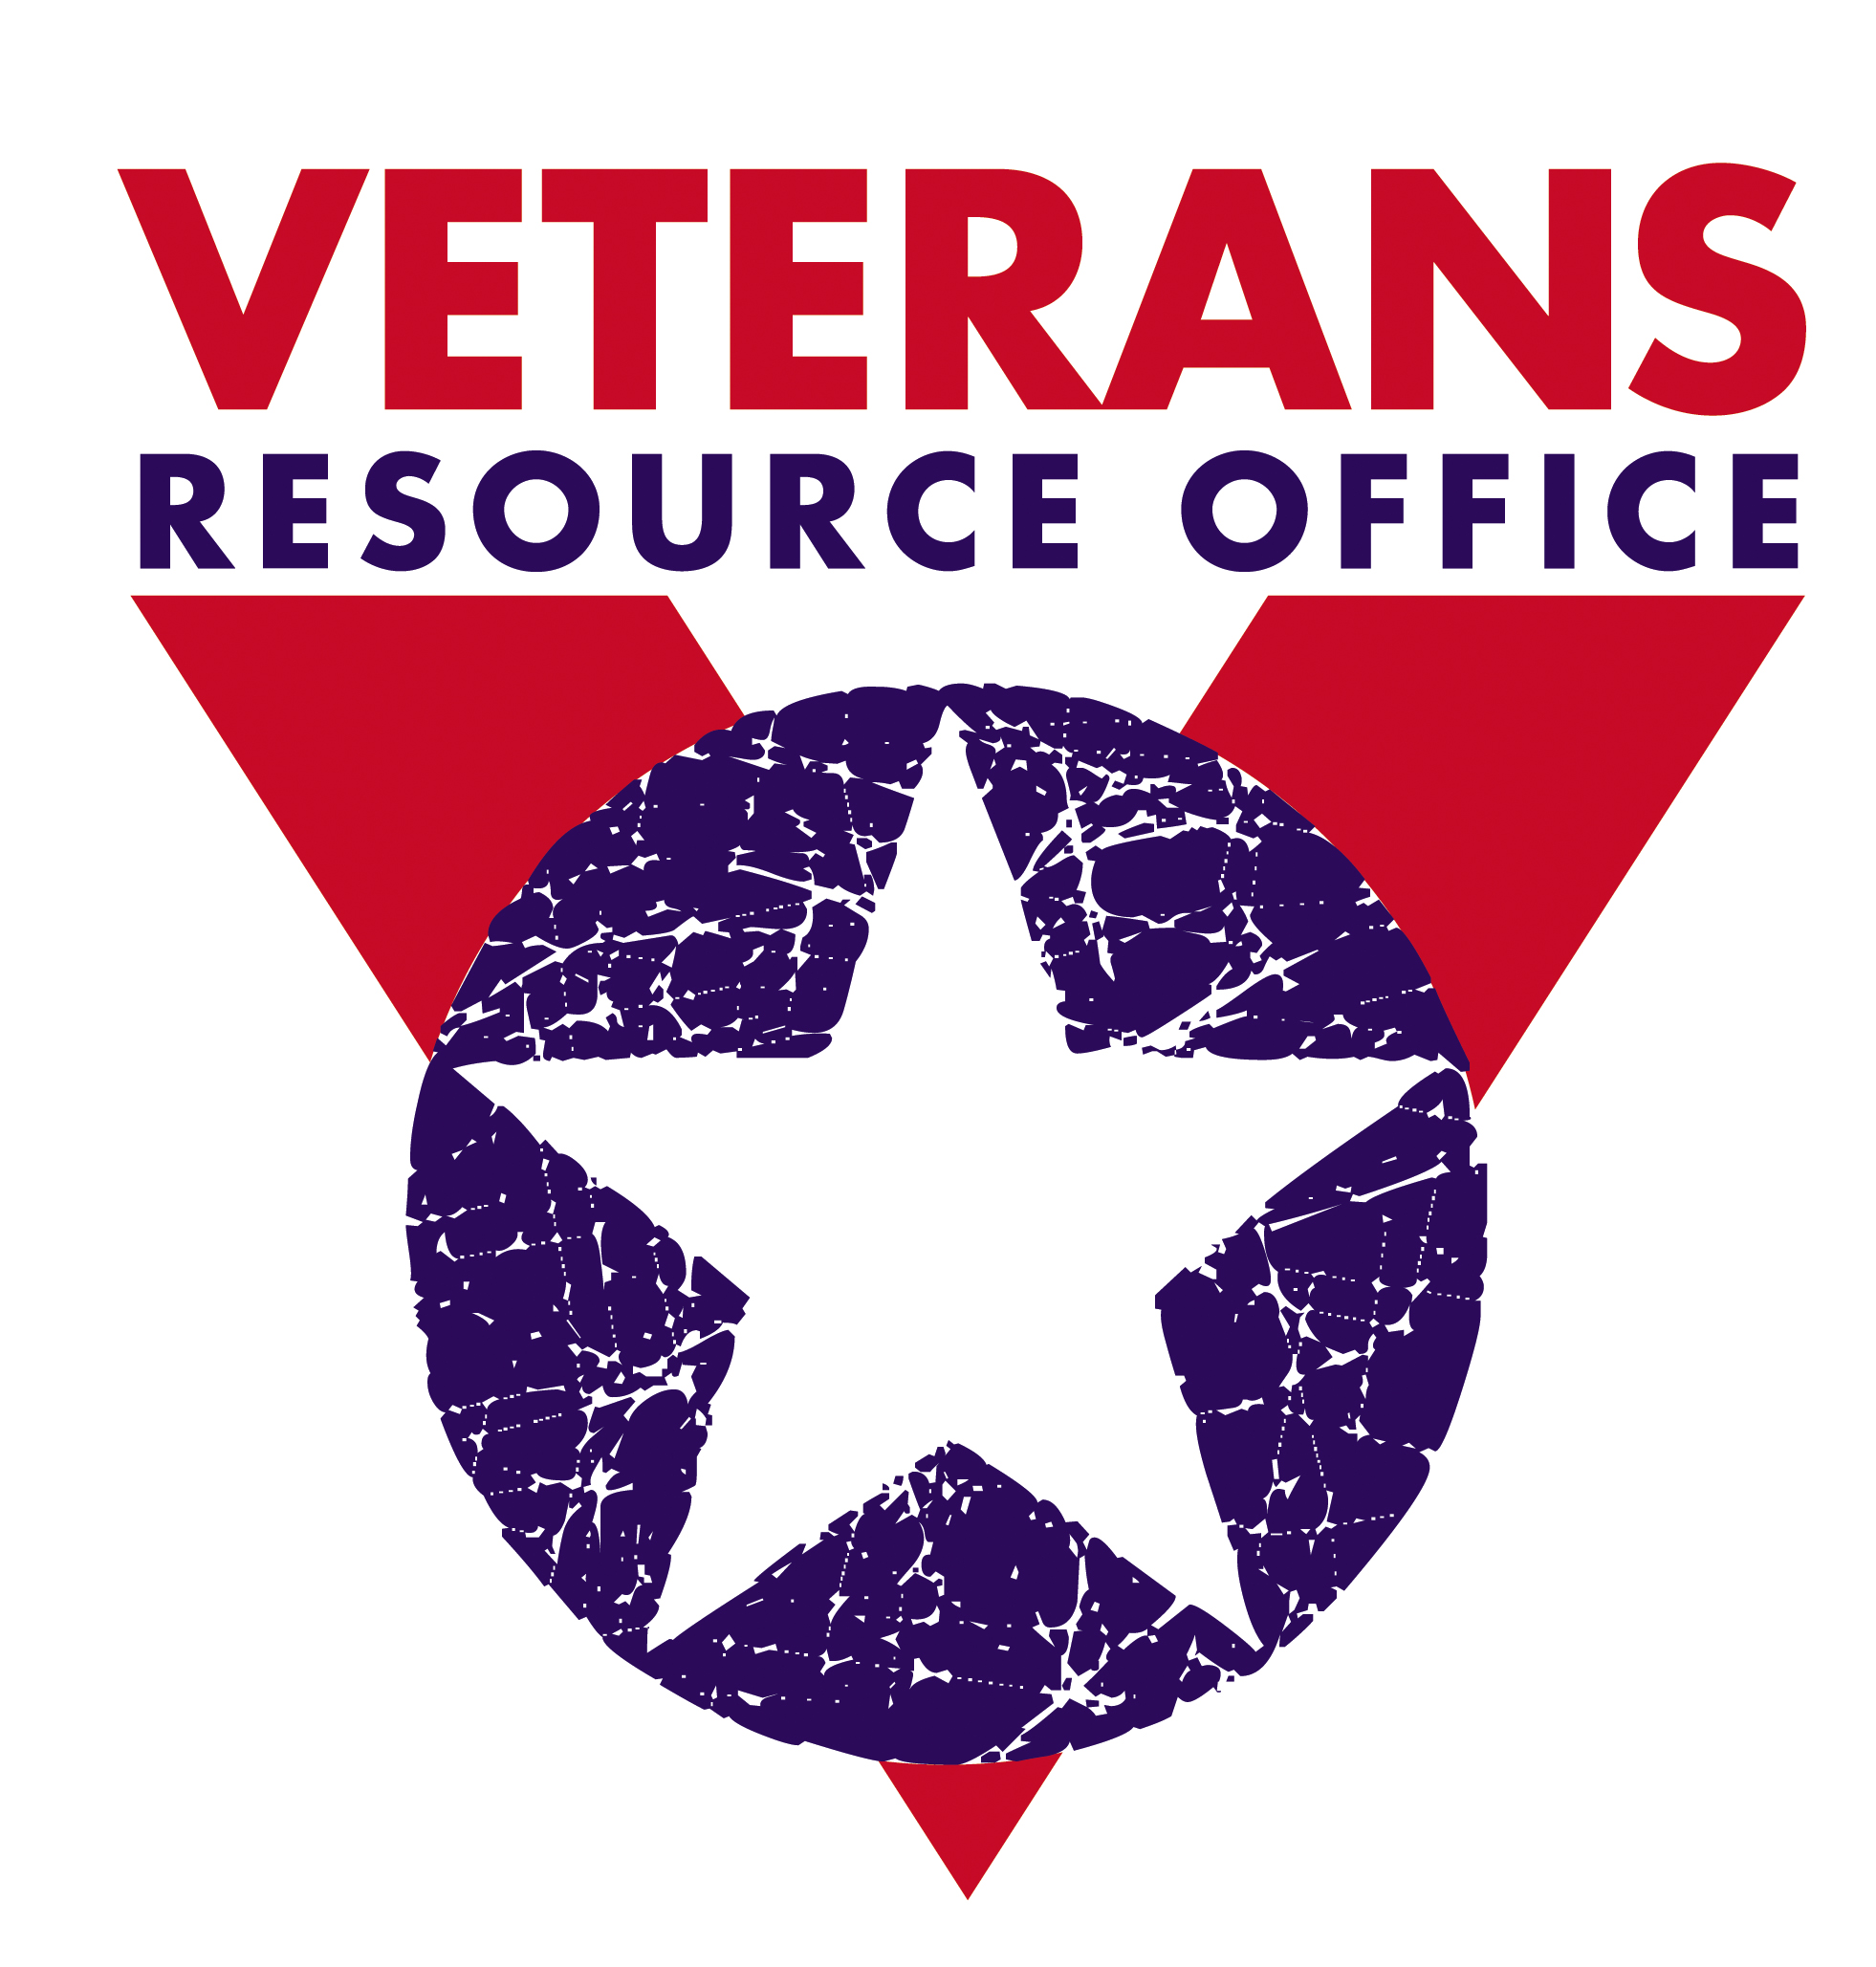 Veterans Resource Office logo